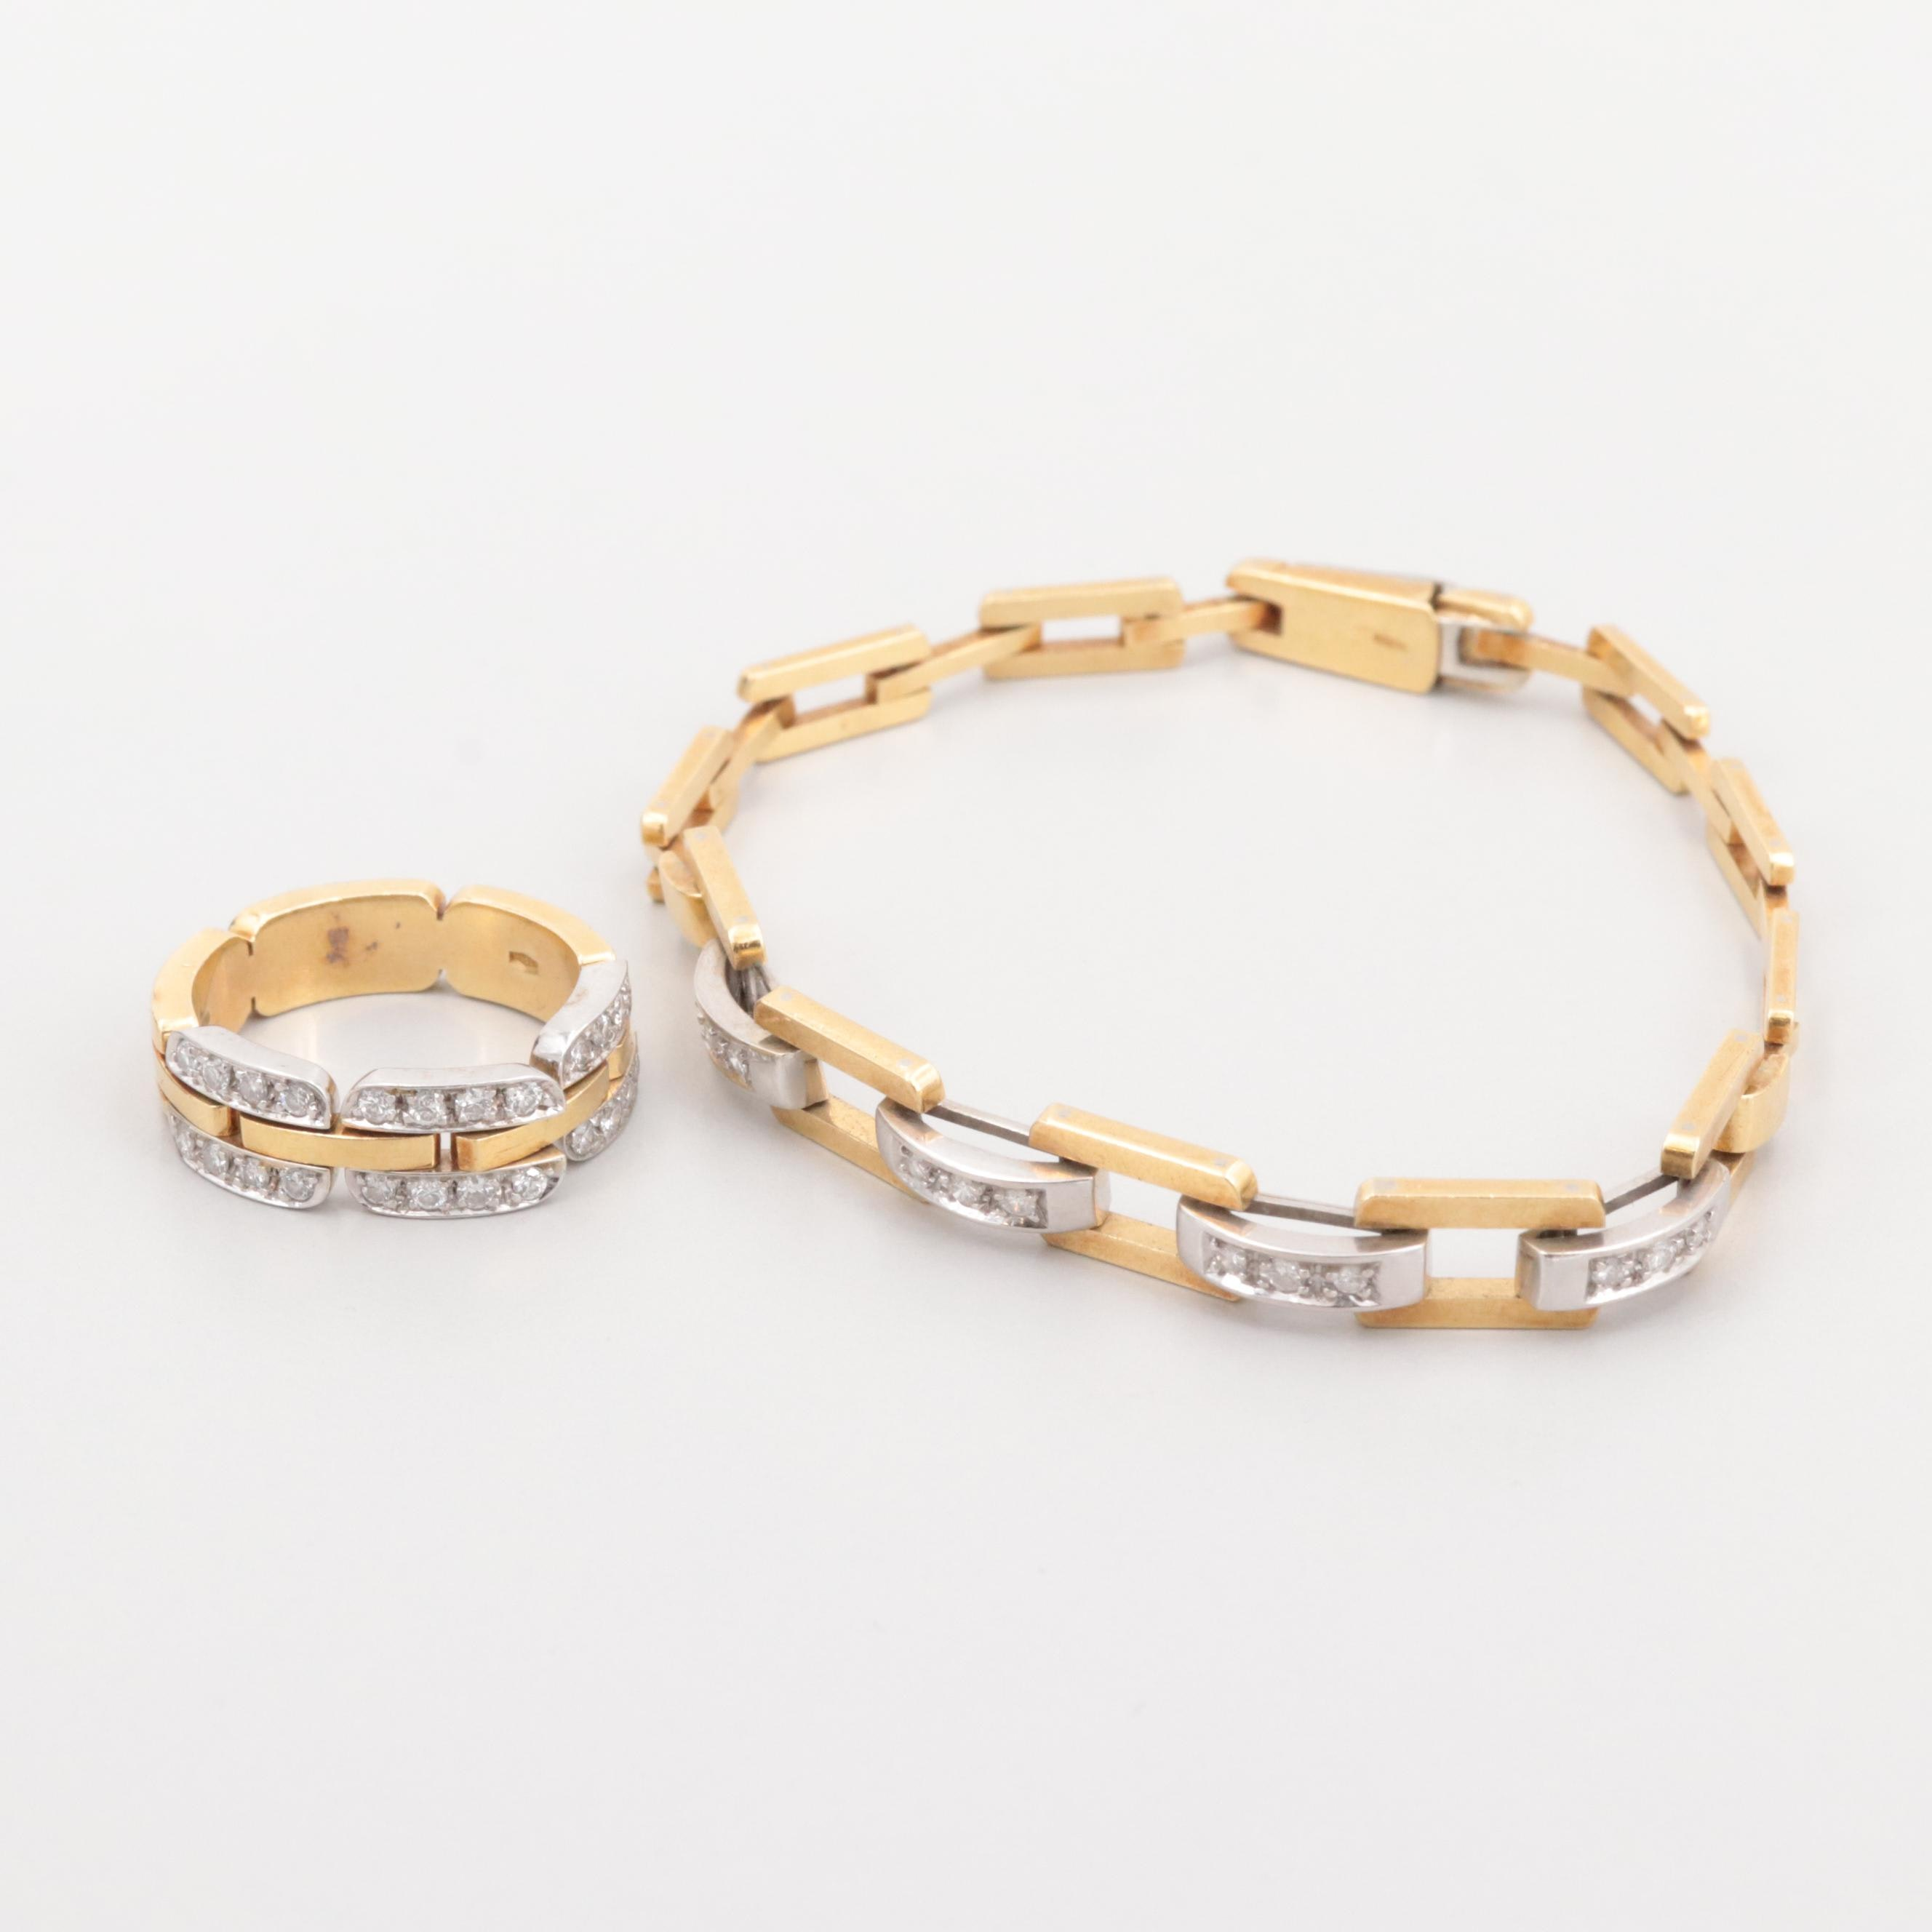 18K Yellow Gold, White Gold Diamond Bracelet and Ring